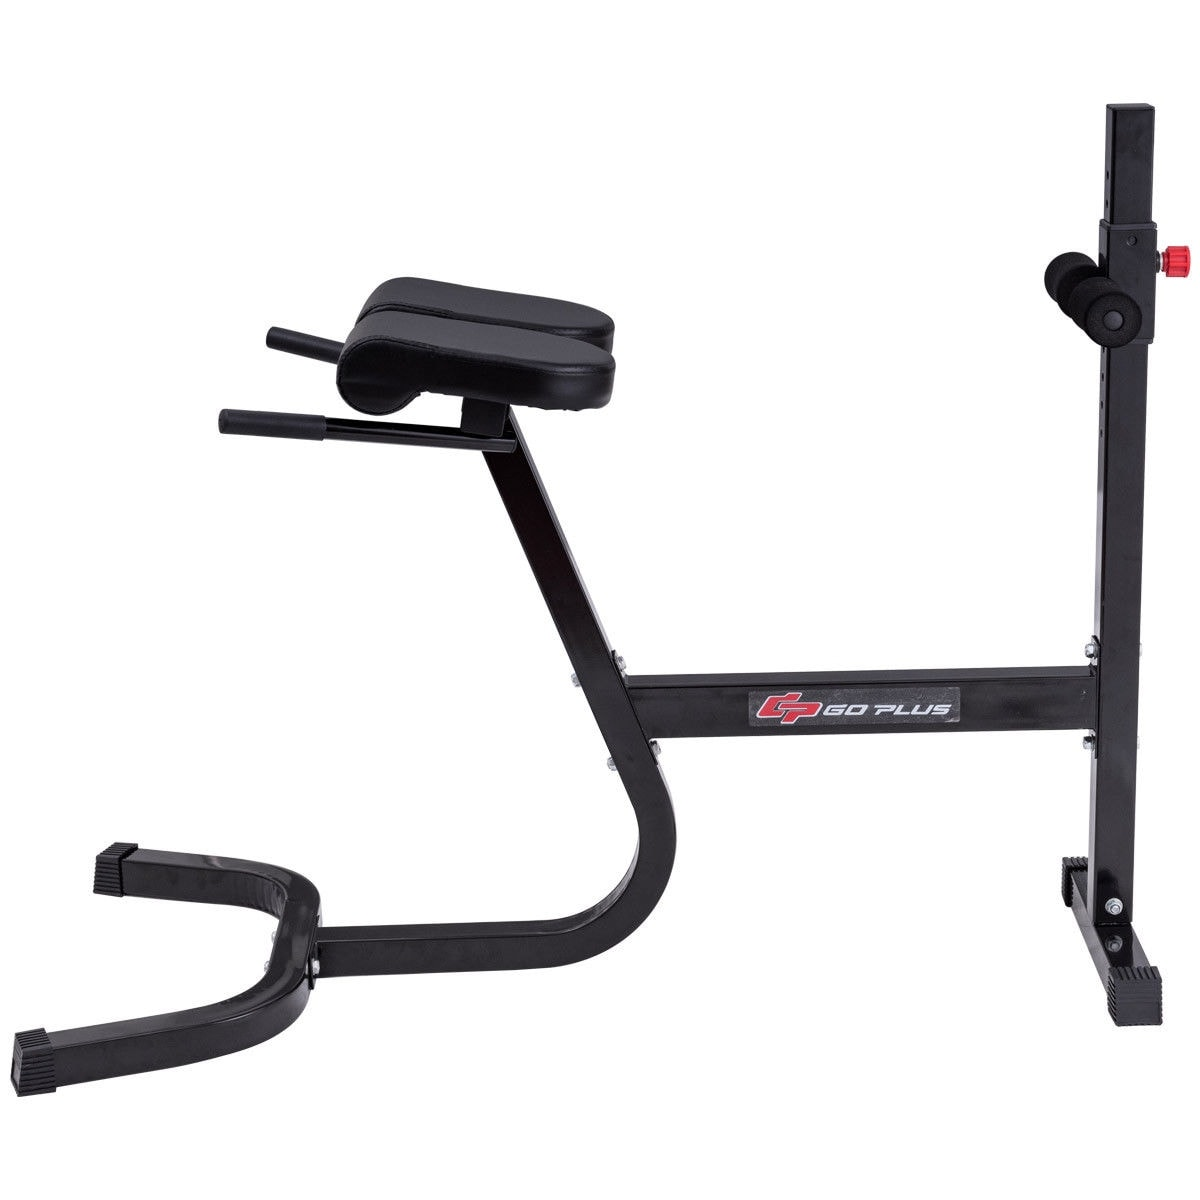 diy roman chair target counter chairs hyperextension bench wood www topsimages com shop goplus back abdominal exercise home fitness workout free shipping today jpg